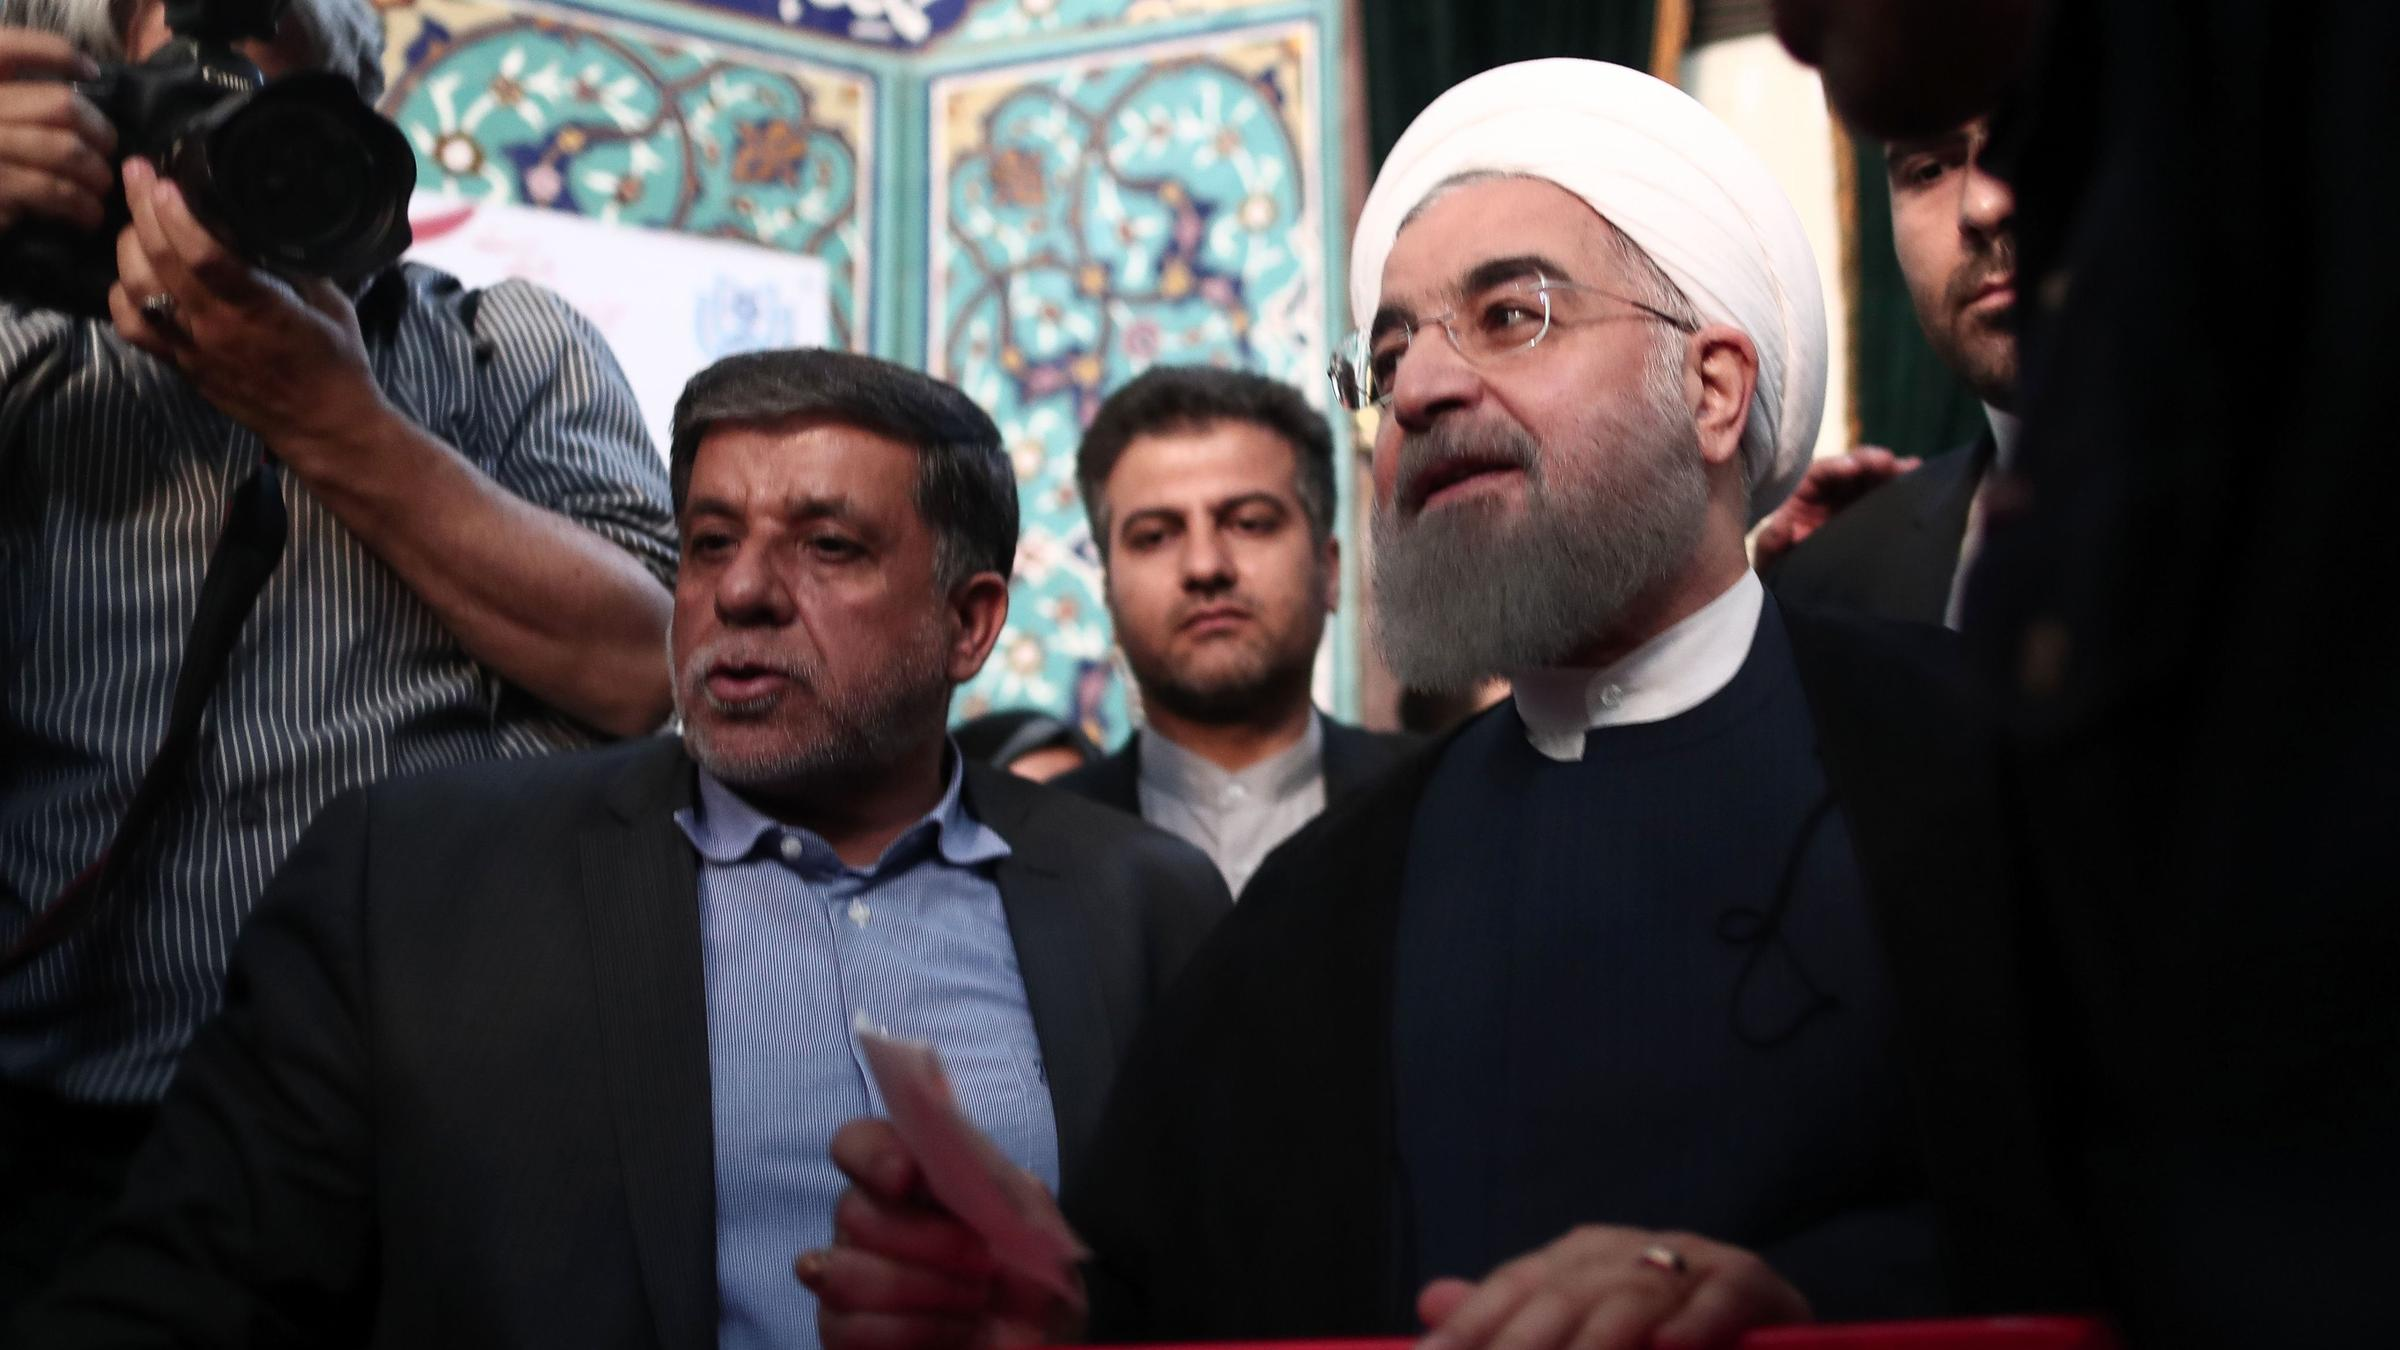 Rouhani looks set to secure second term in Iran